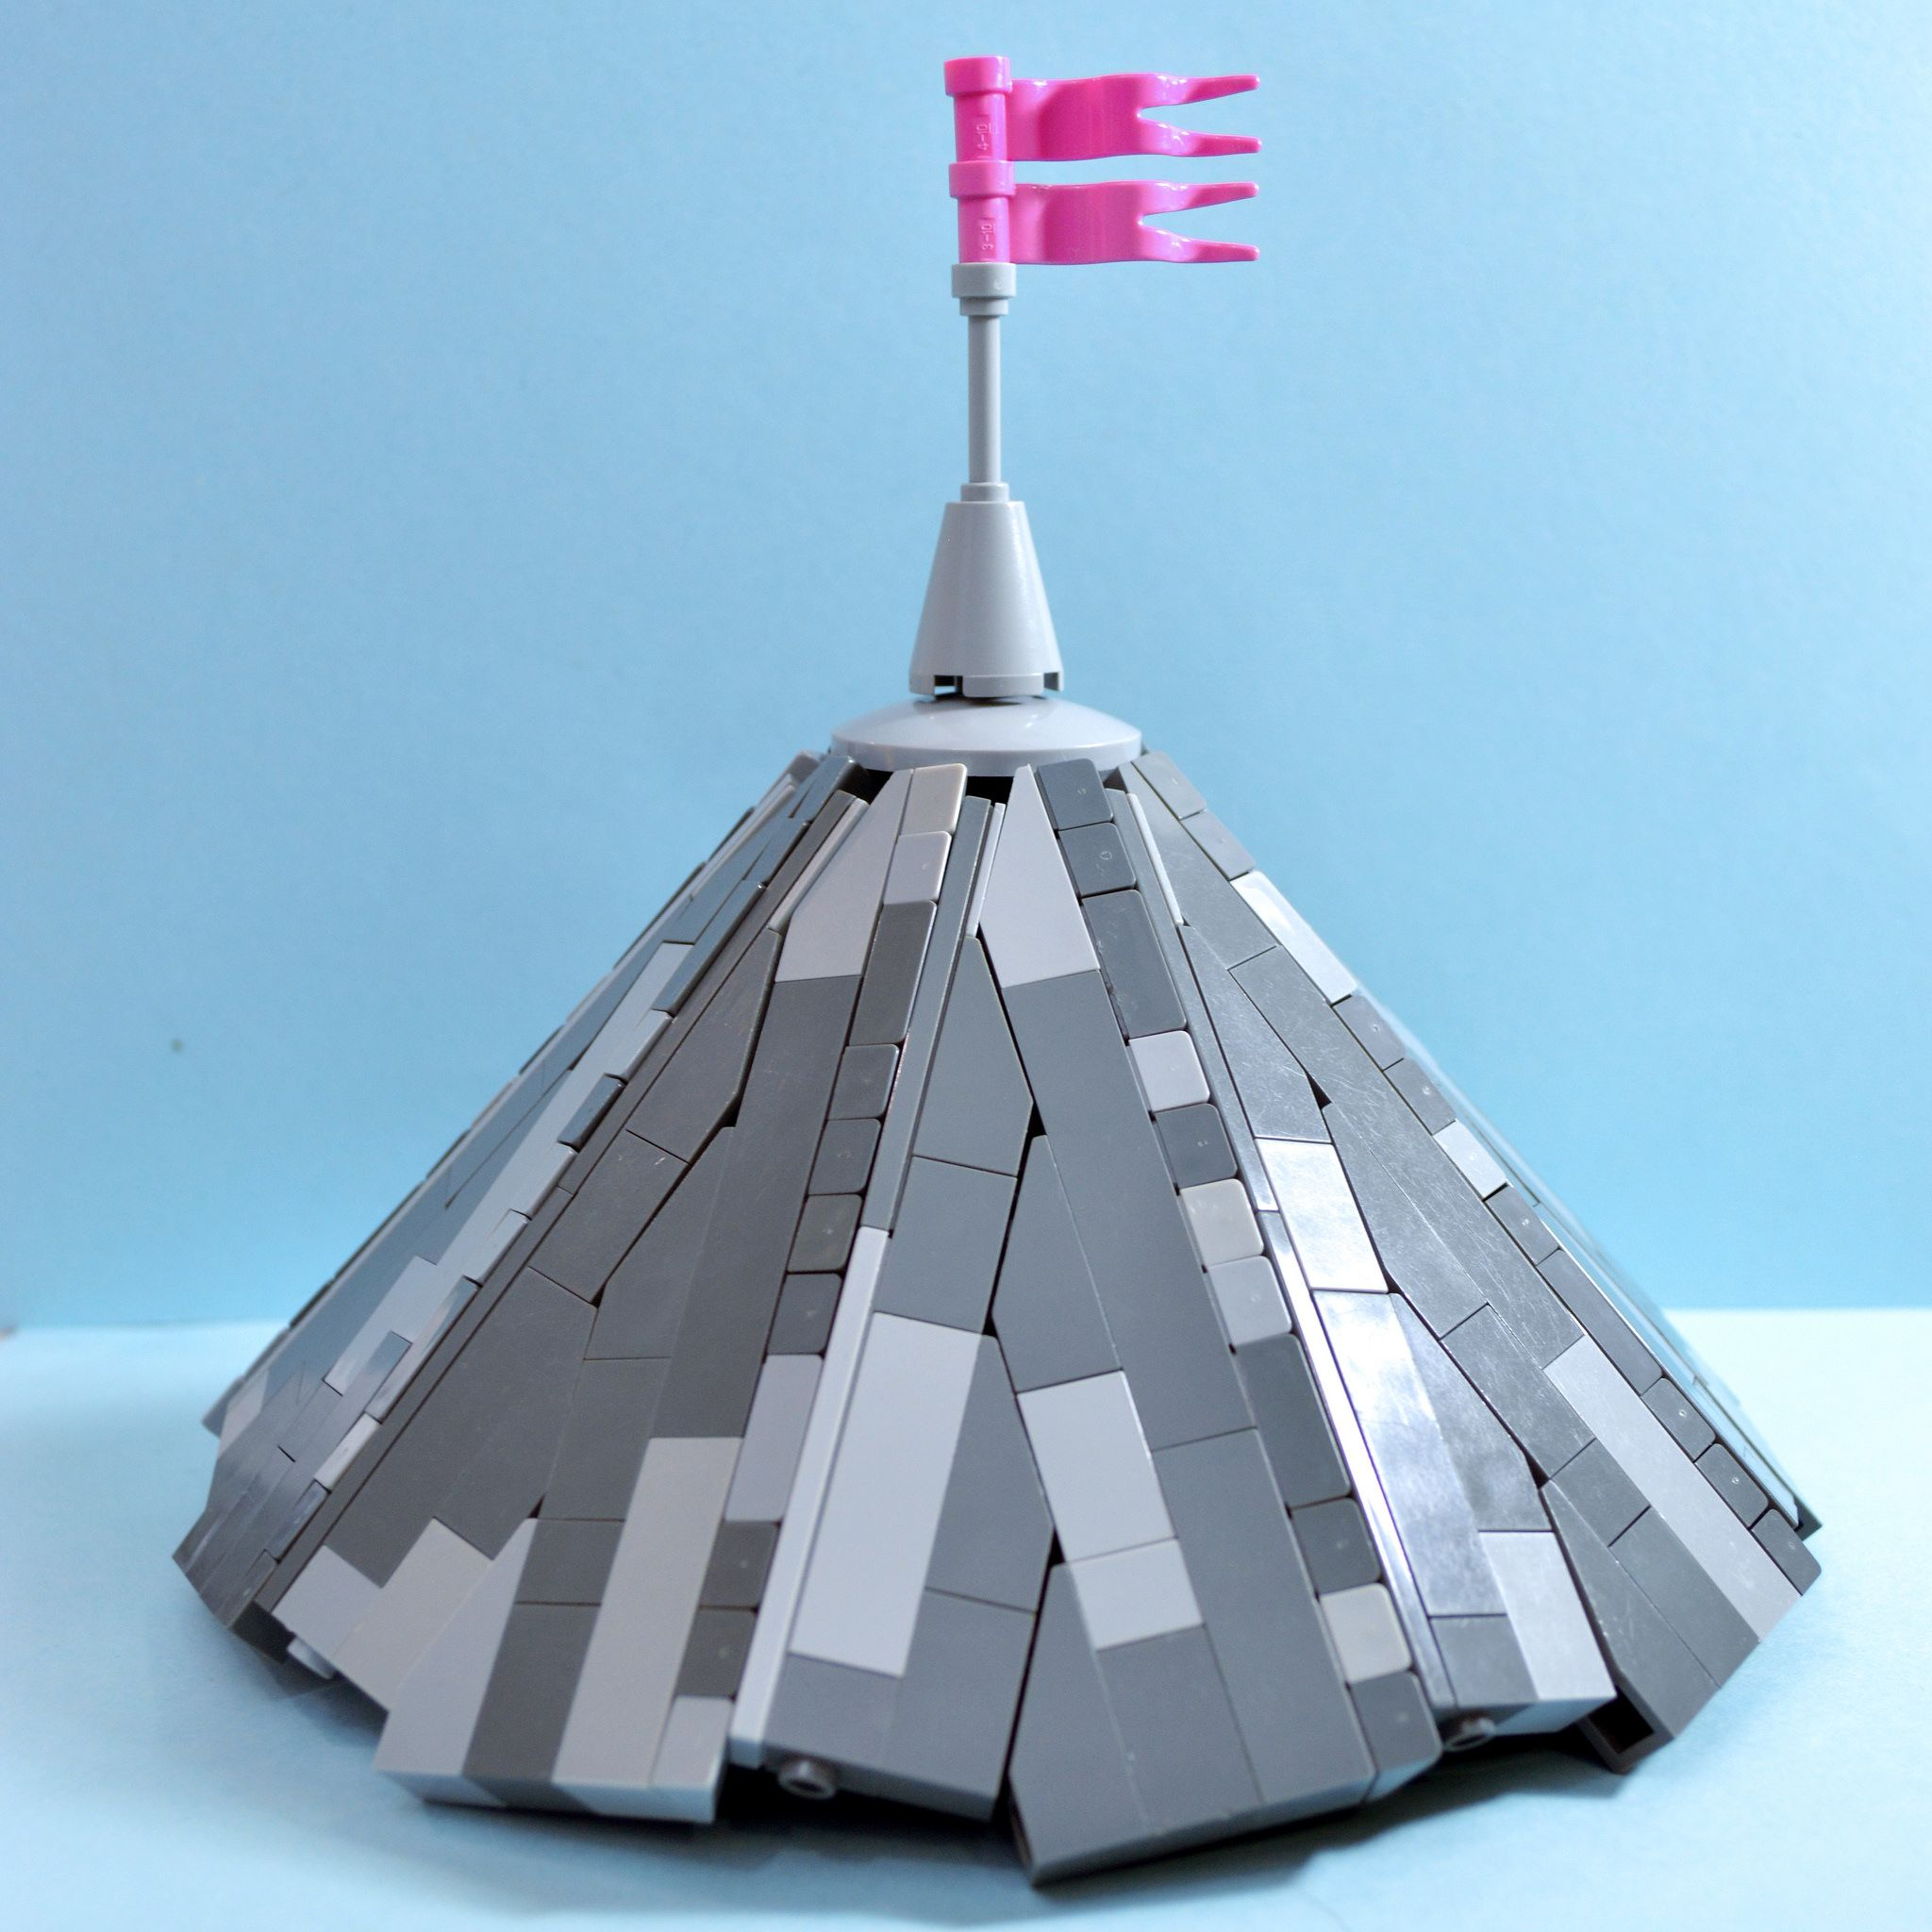 Brick Built Conical Roof Lego Architecture Lego Construction Cool Lego